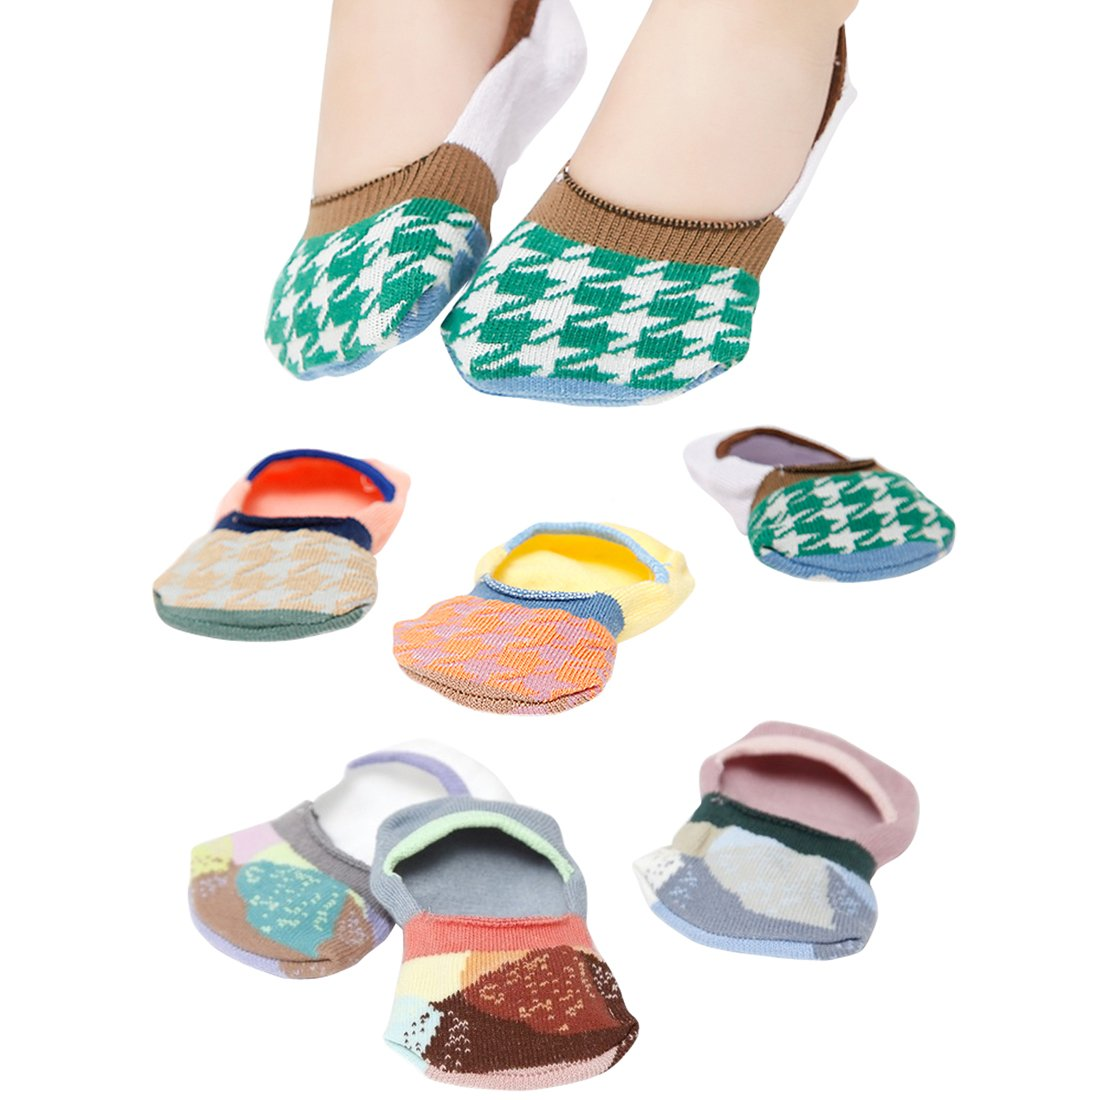 S 6 Pairs Cotton Anti-slip No Show Baby Infant Toddler Socks